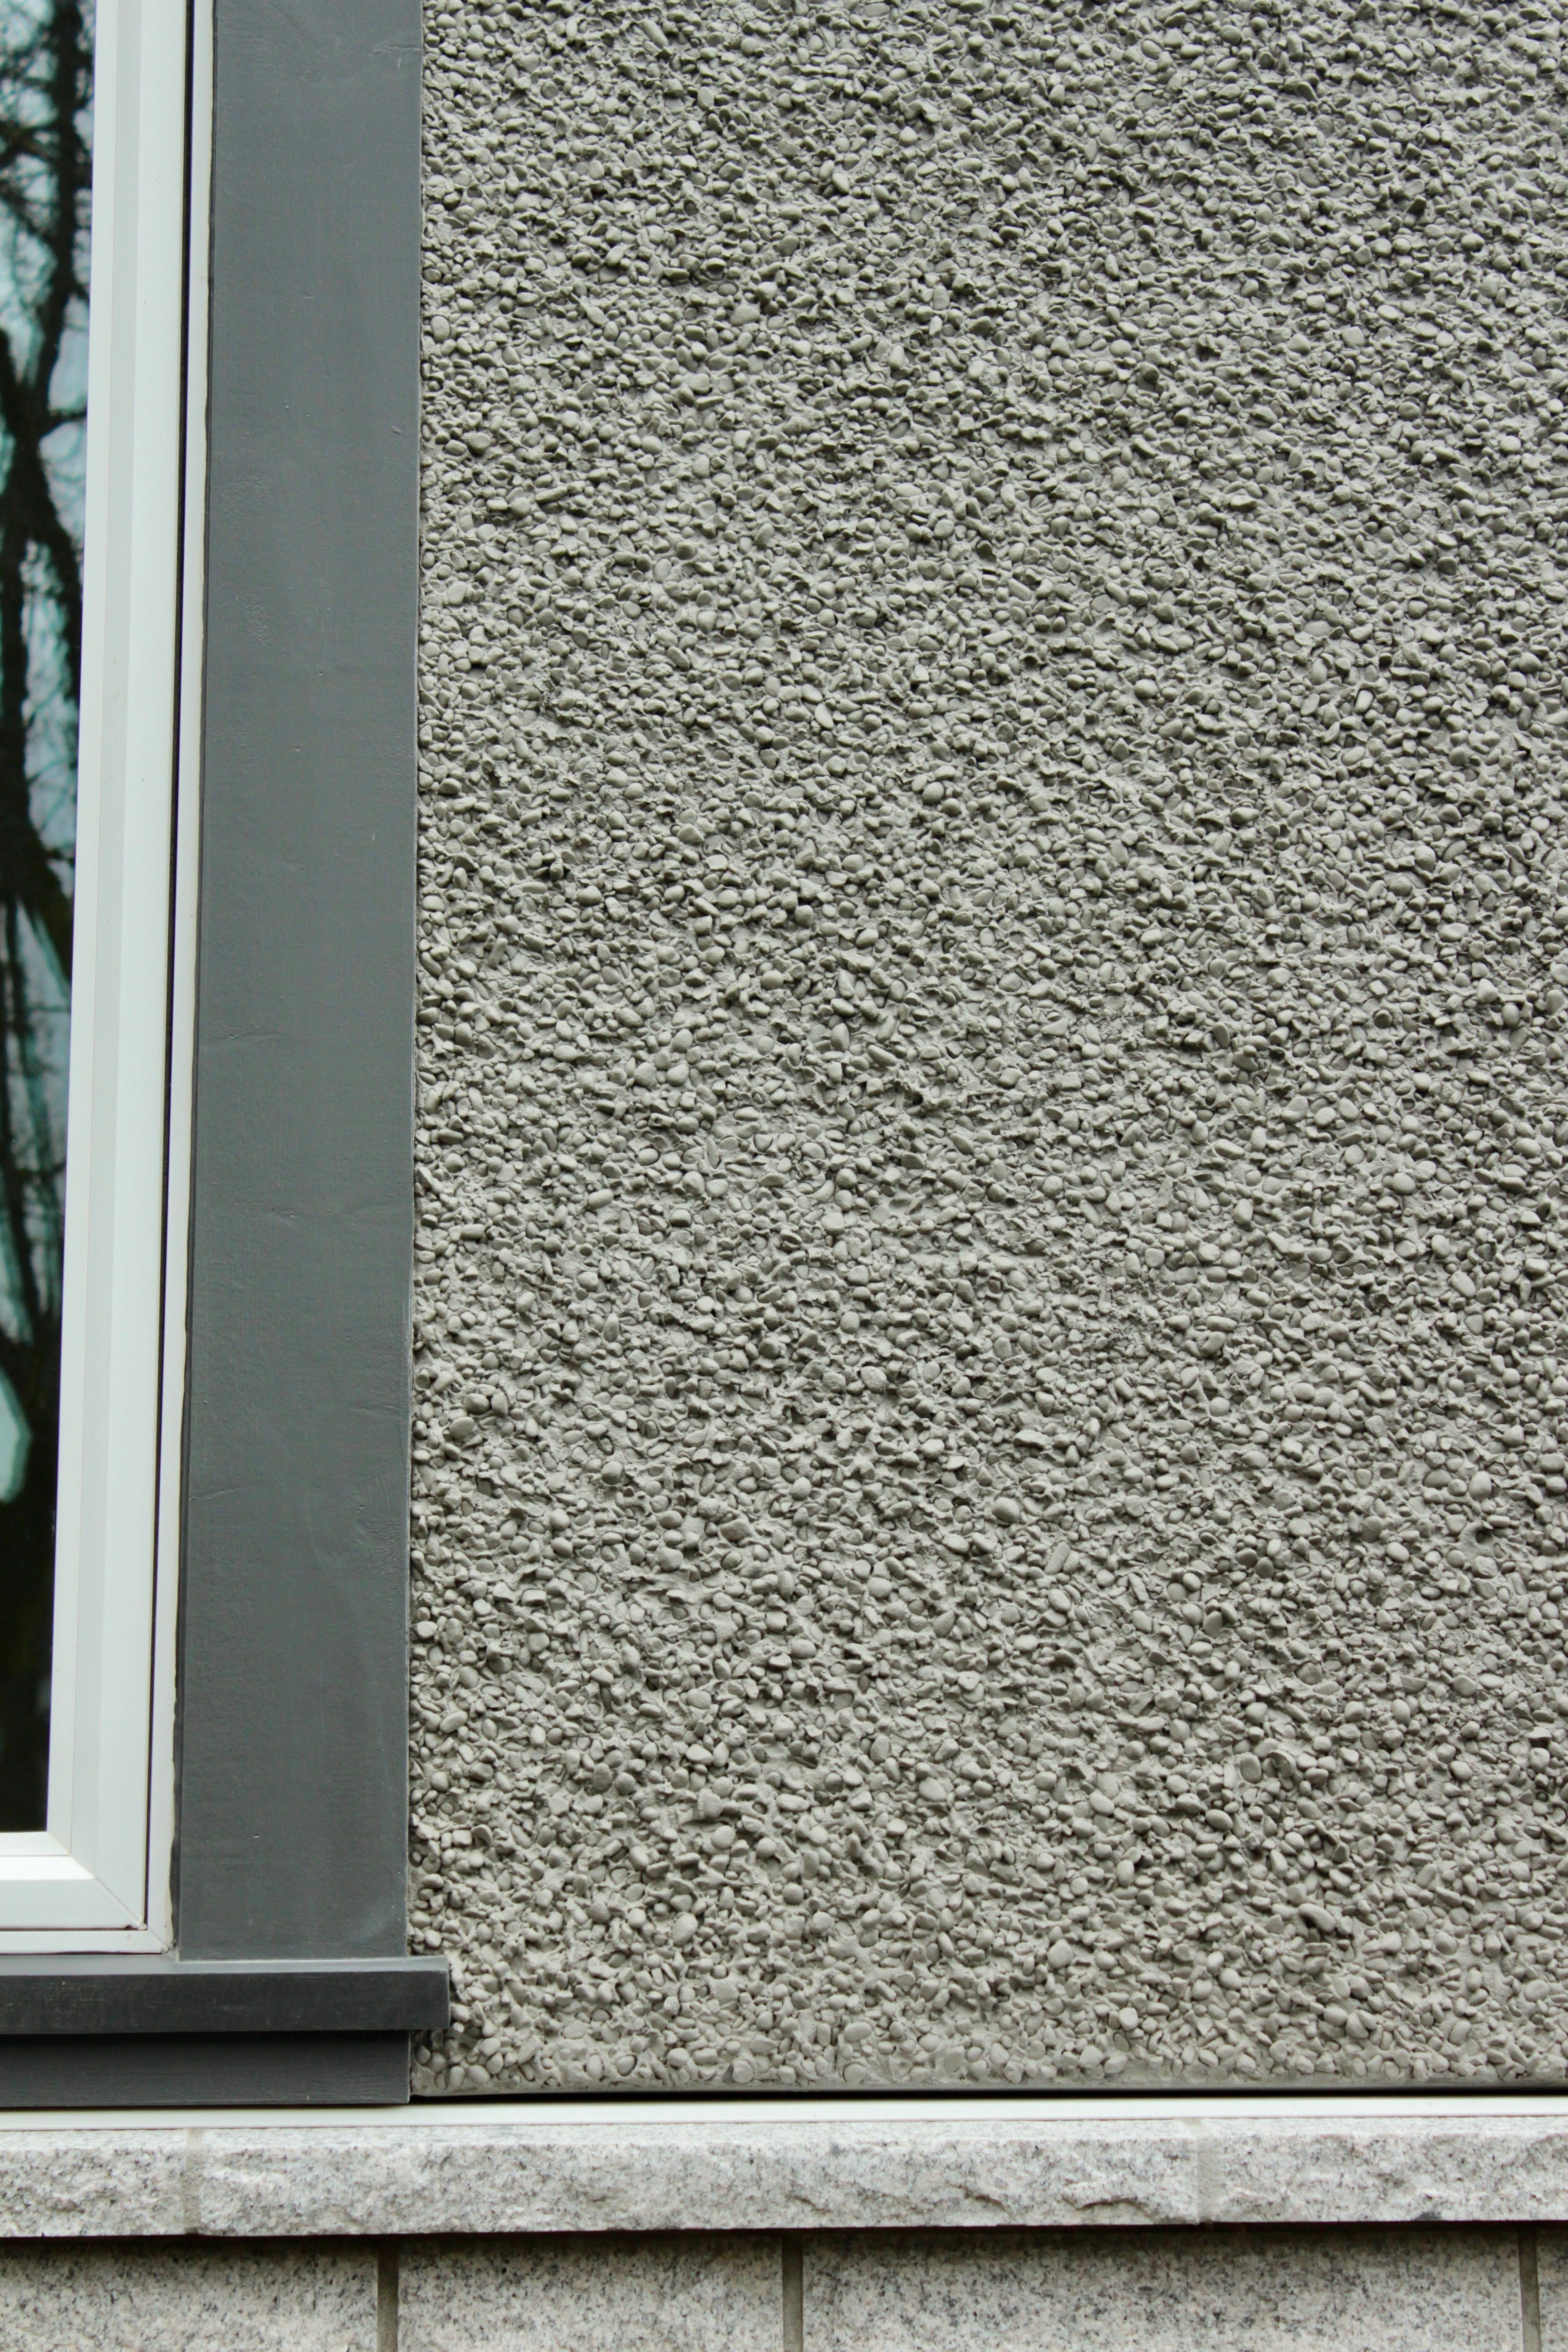 Painted Rock Dash Stucco Finish Gives Your Home A Great Consistent Texture Stucco Exterior Stucco Texture Exterior Paint